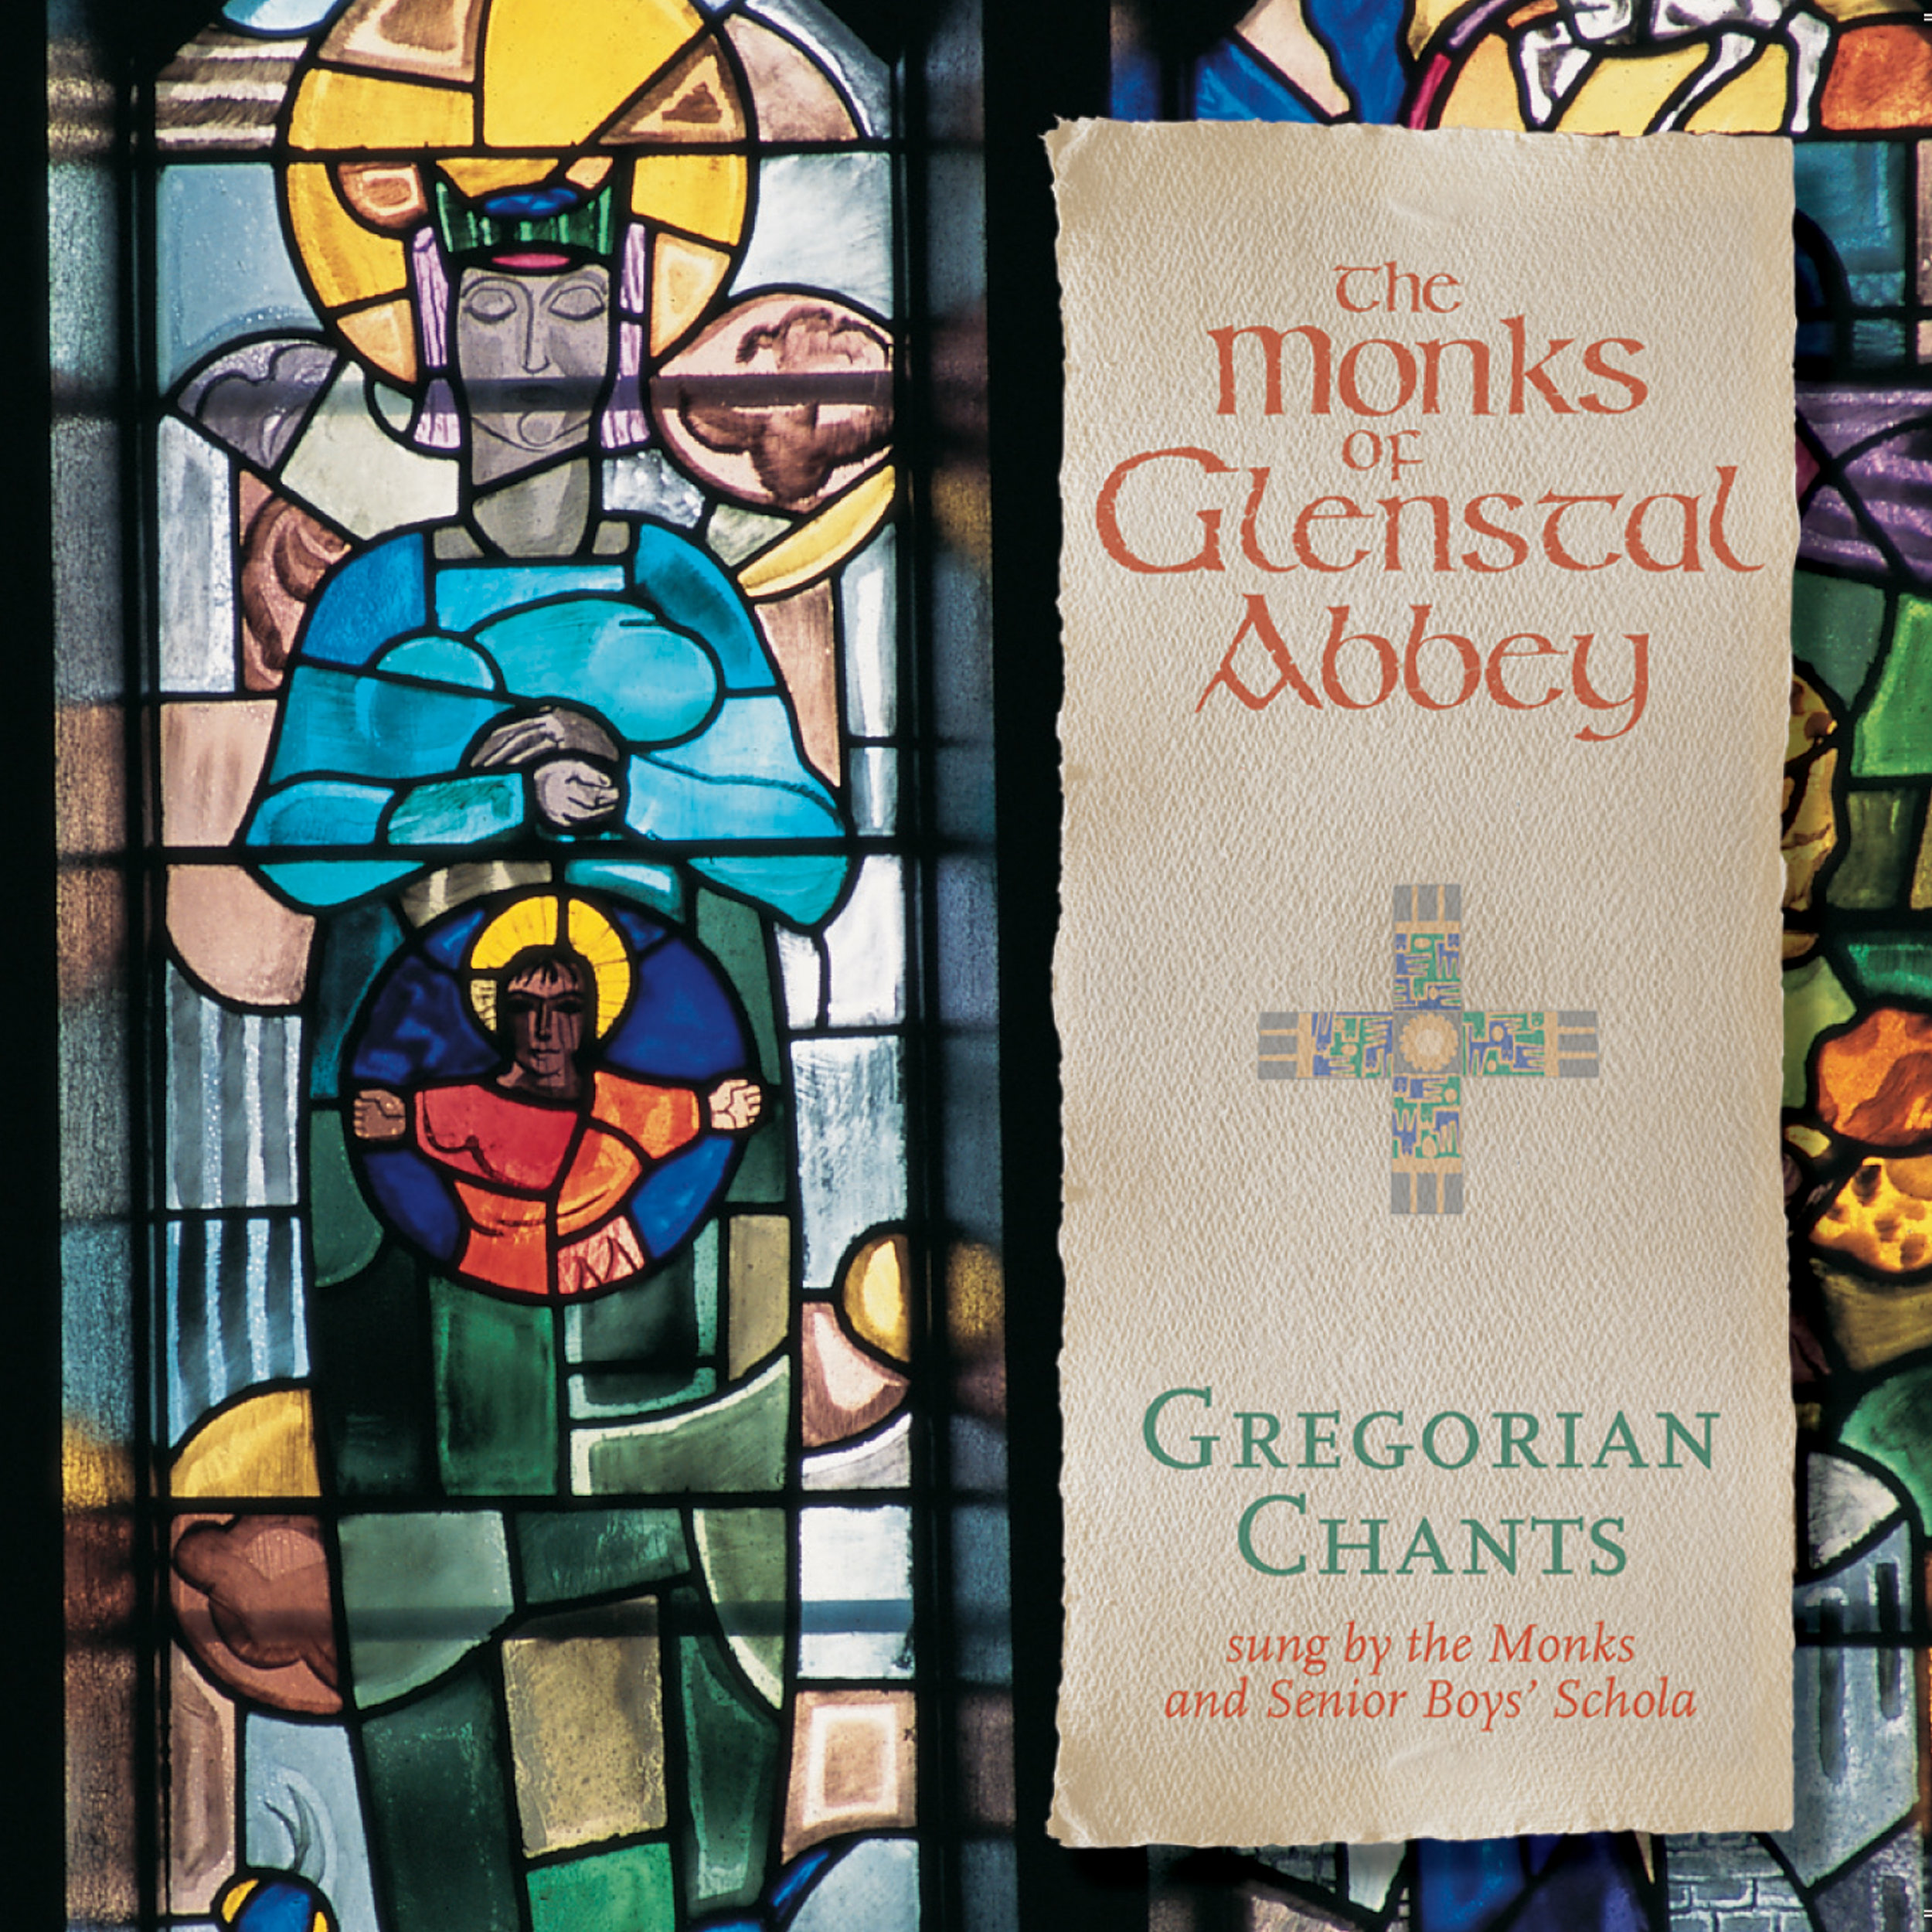 The Monks of Glenstal Abbey